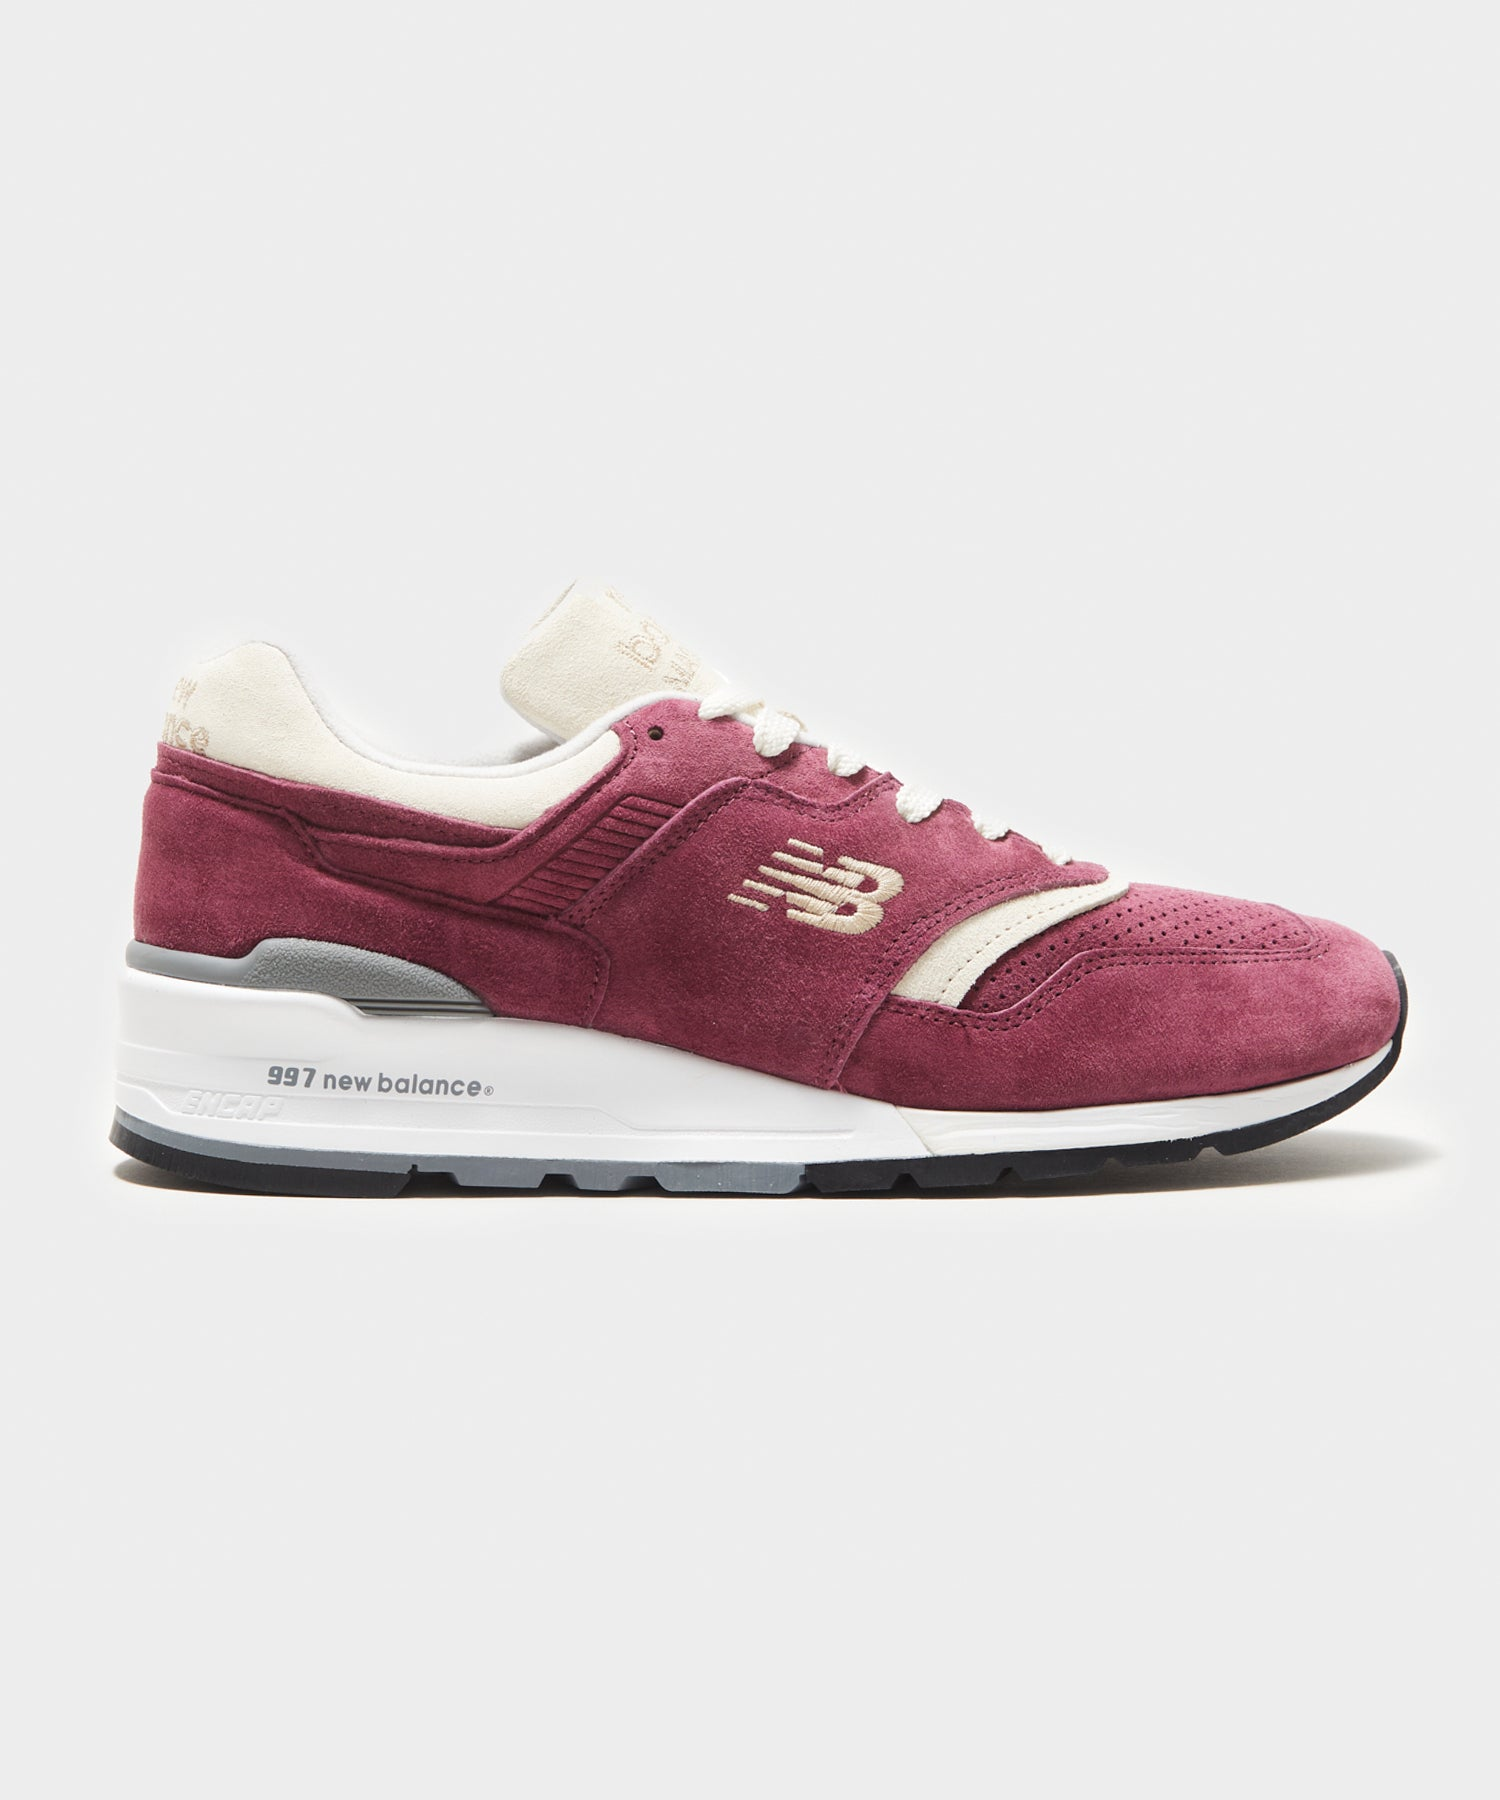 Exclusive Todd Snyder + New Balance 997 Triborough in Burgundy